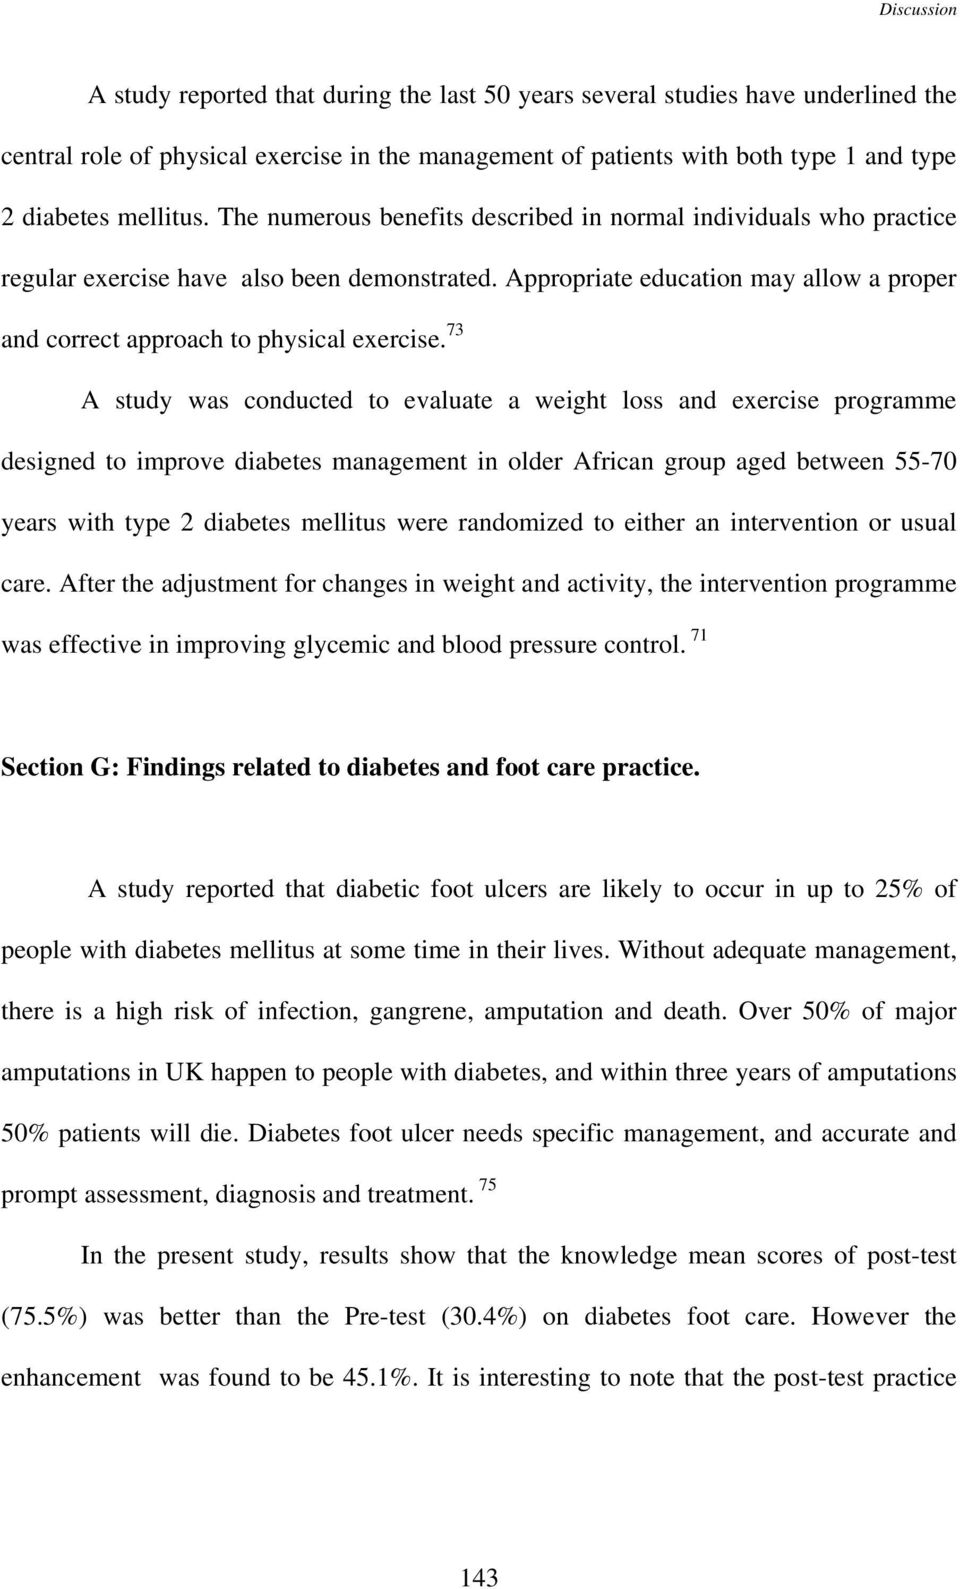 73 A study was conducted to evaluate a weight loss and exercise programme designed to improve diabetes management in older African group aged between 55-70 years with type 2 diabetes mellitus were